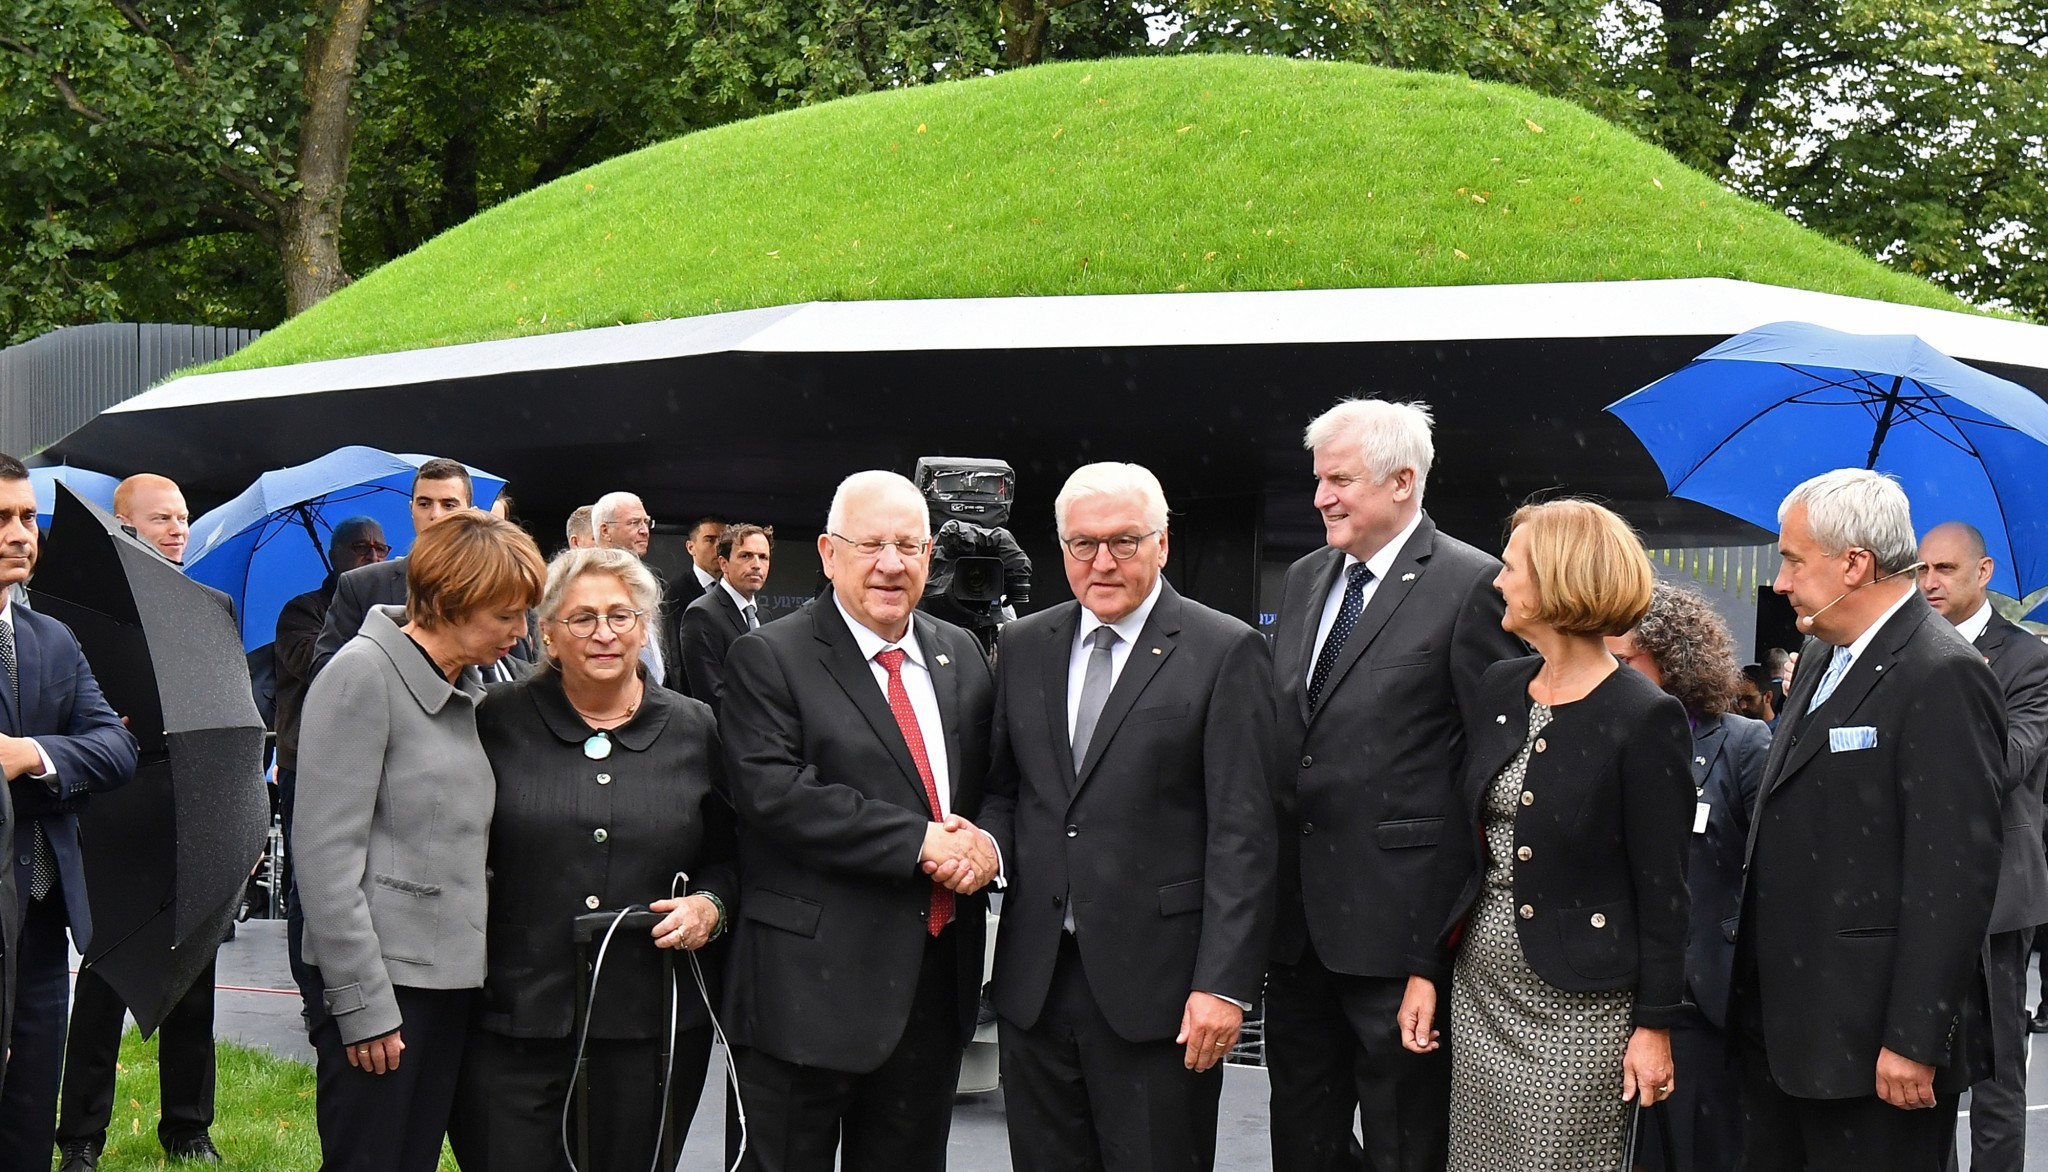 Israeli President Reuven Rivlin, left, and German President Frank-Walter Steinmeier, right, shake hands at the opening of the memorial for the victims of the Munich massacre ©Getty Images